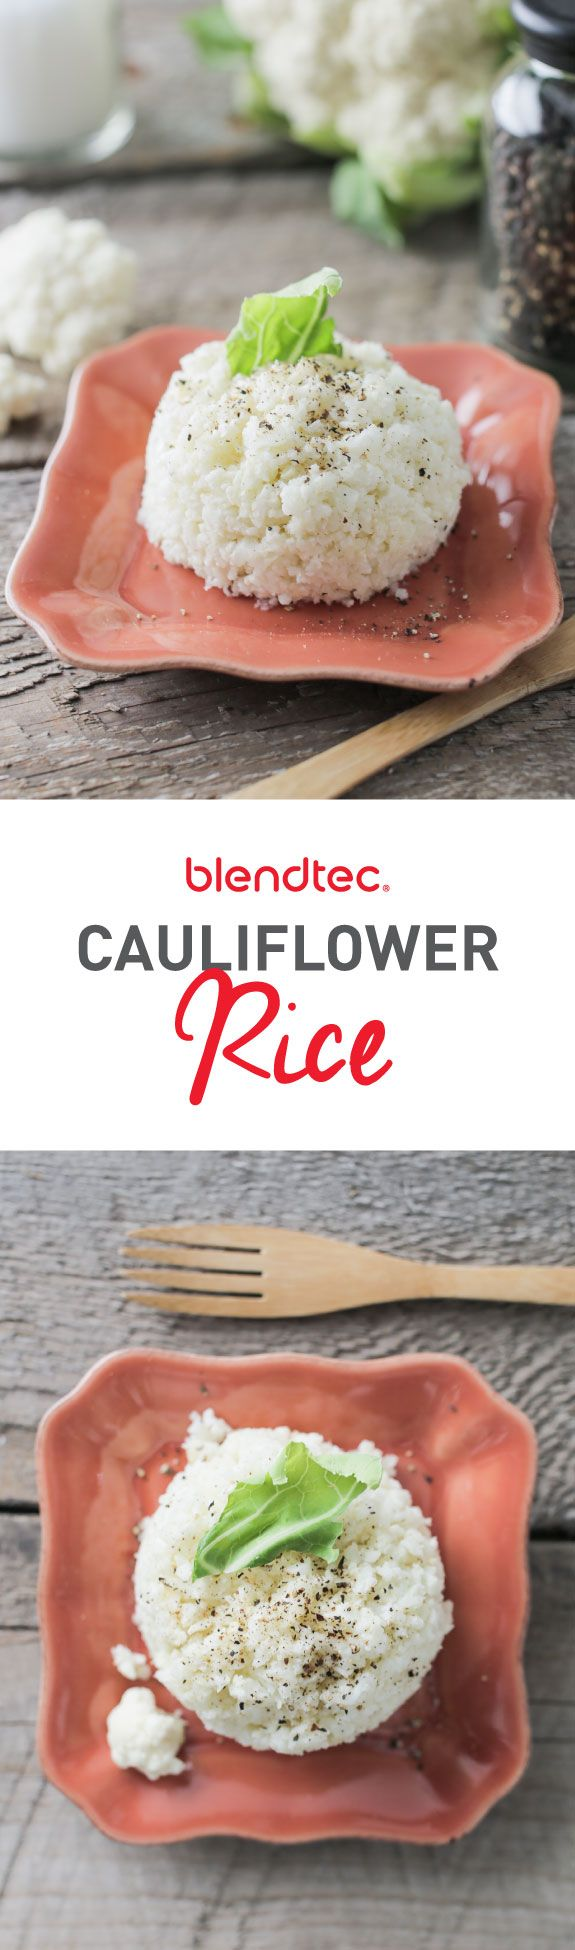 Cauliflower rice is a great low-carb substitution for rice in your favorite recipes. It is a great recipe for many nutrition plans and diets (like #Whole30 and #paleo).